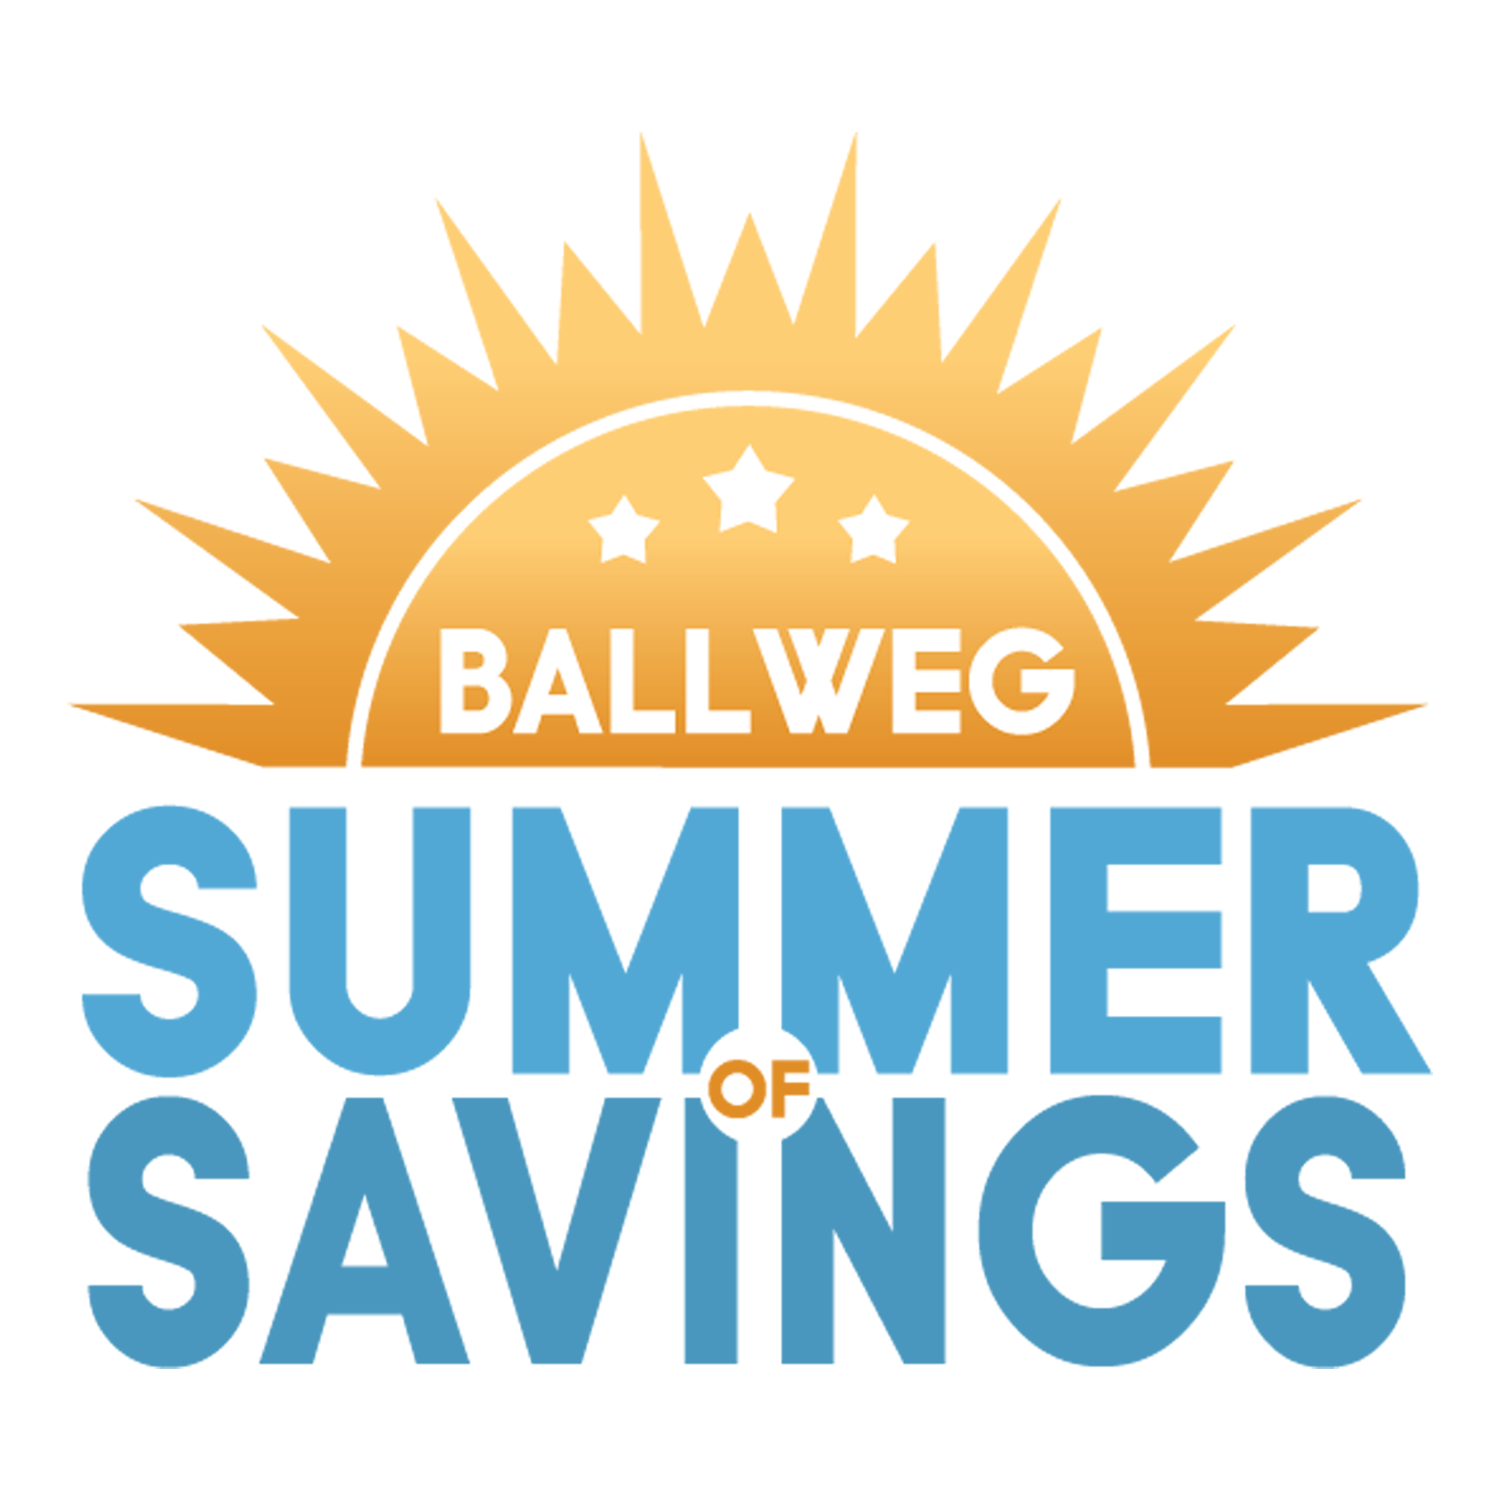 Ballweg Summer Savings